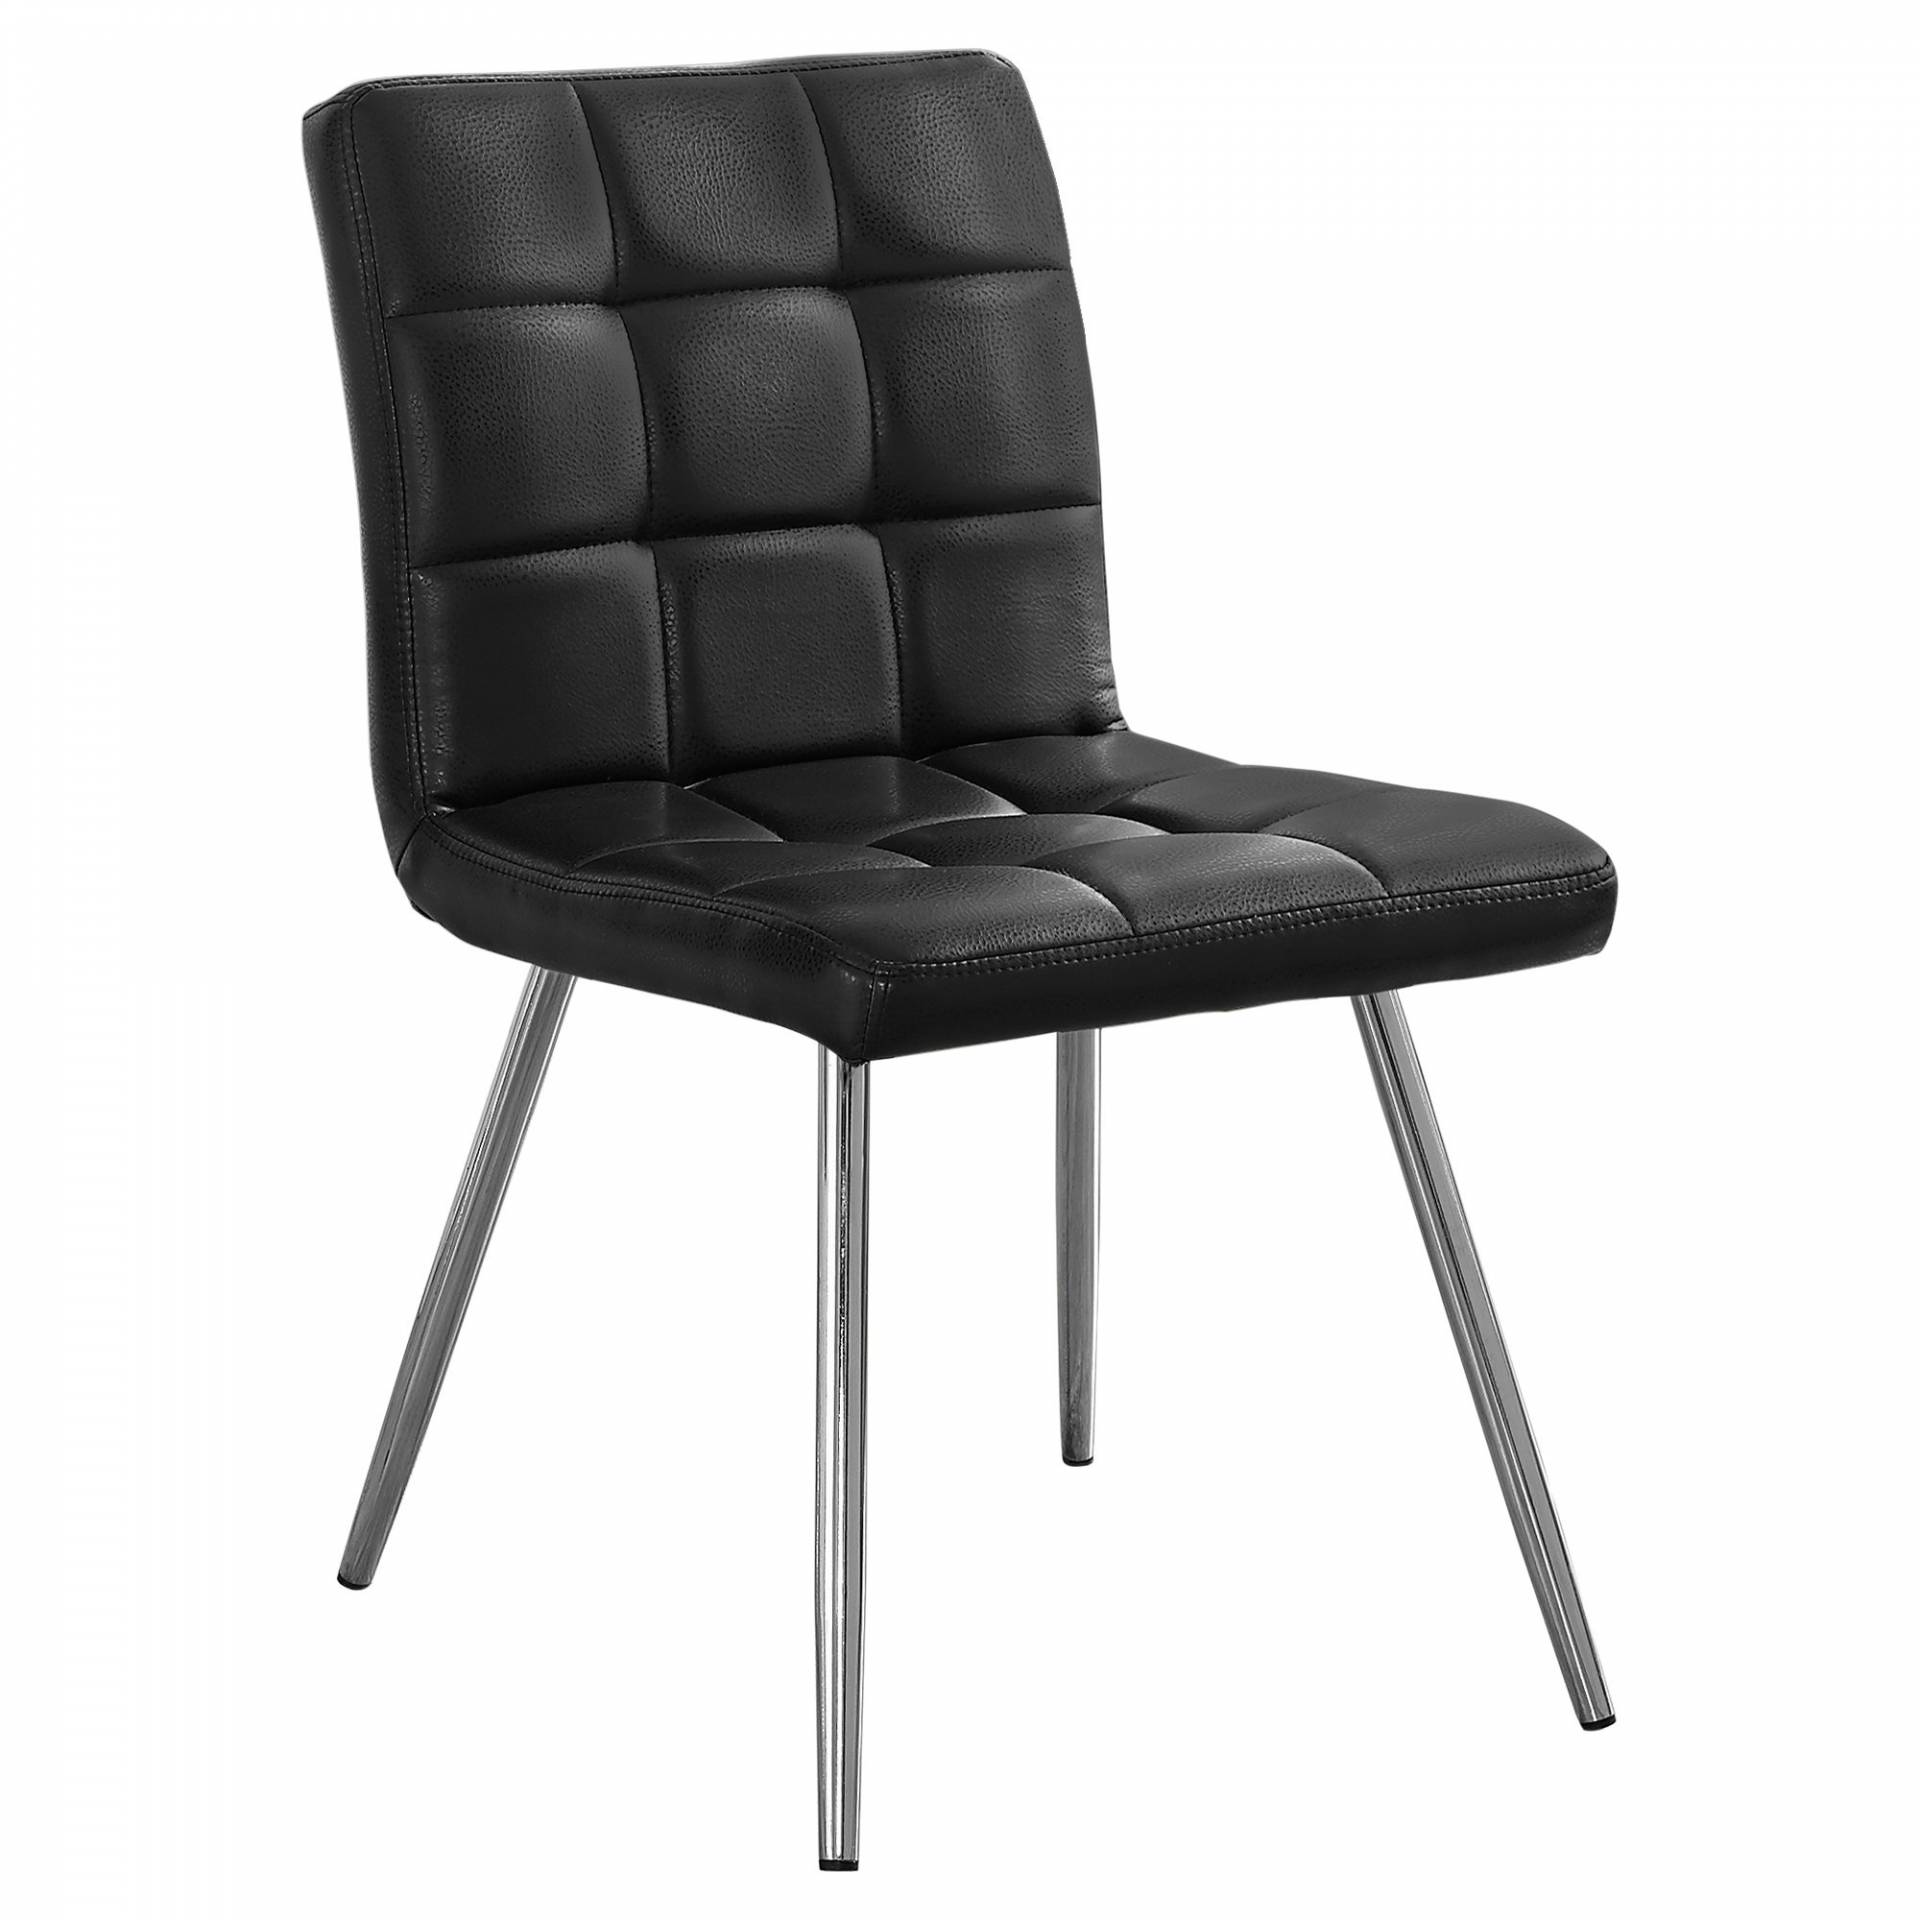 Monarch 2 Piece Quilted PU Leather Chrome Metal Legged Modern Dining Chair Set - Black from Monarch